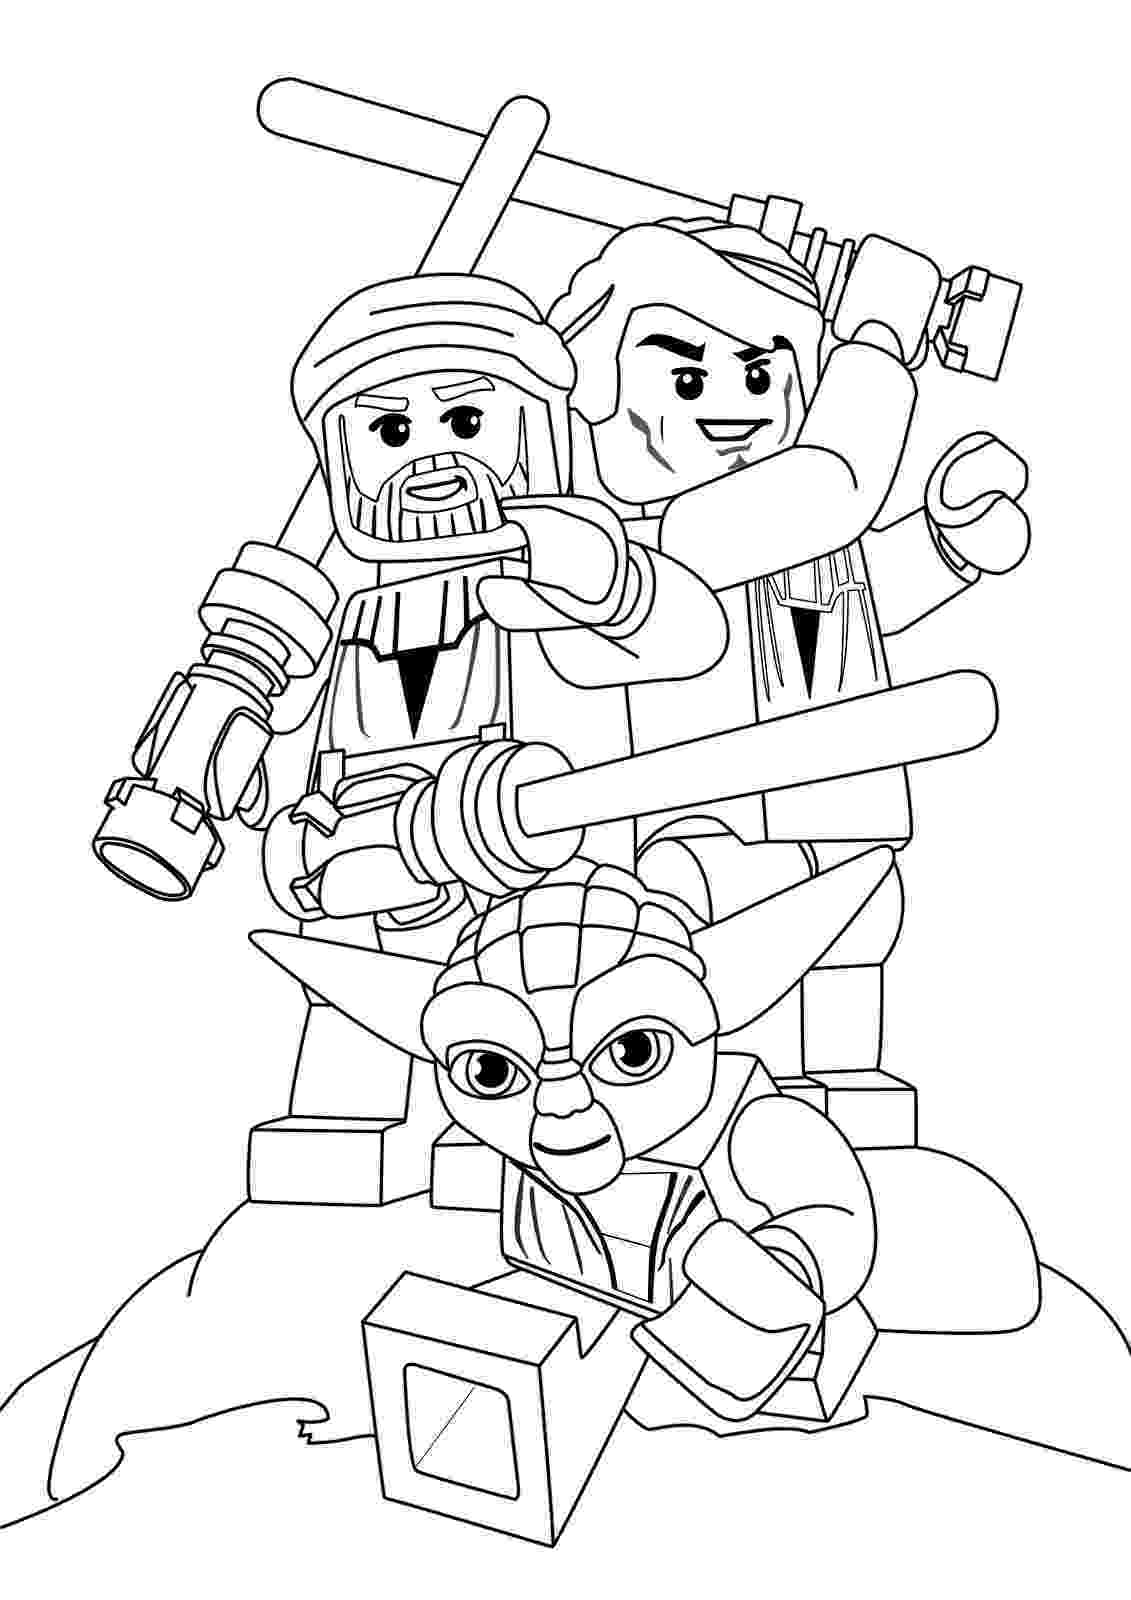 star wars coloring lego lego star wars coloring pages best coloring pages for kids wars lego coloring star